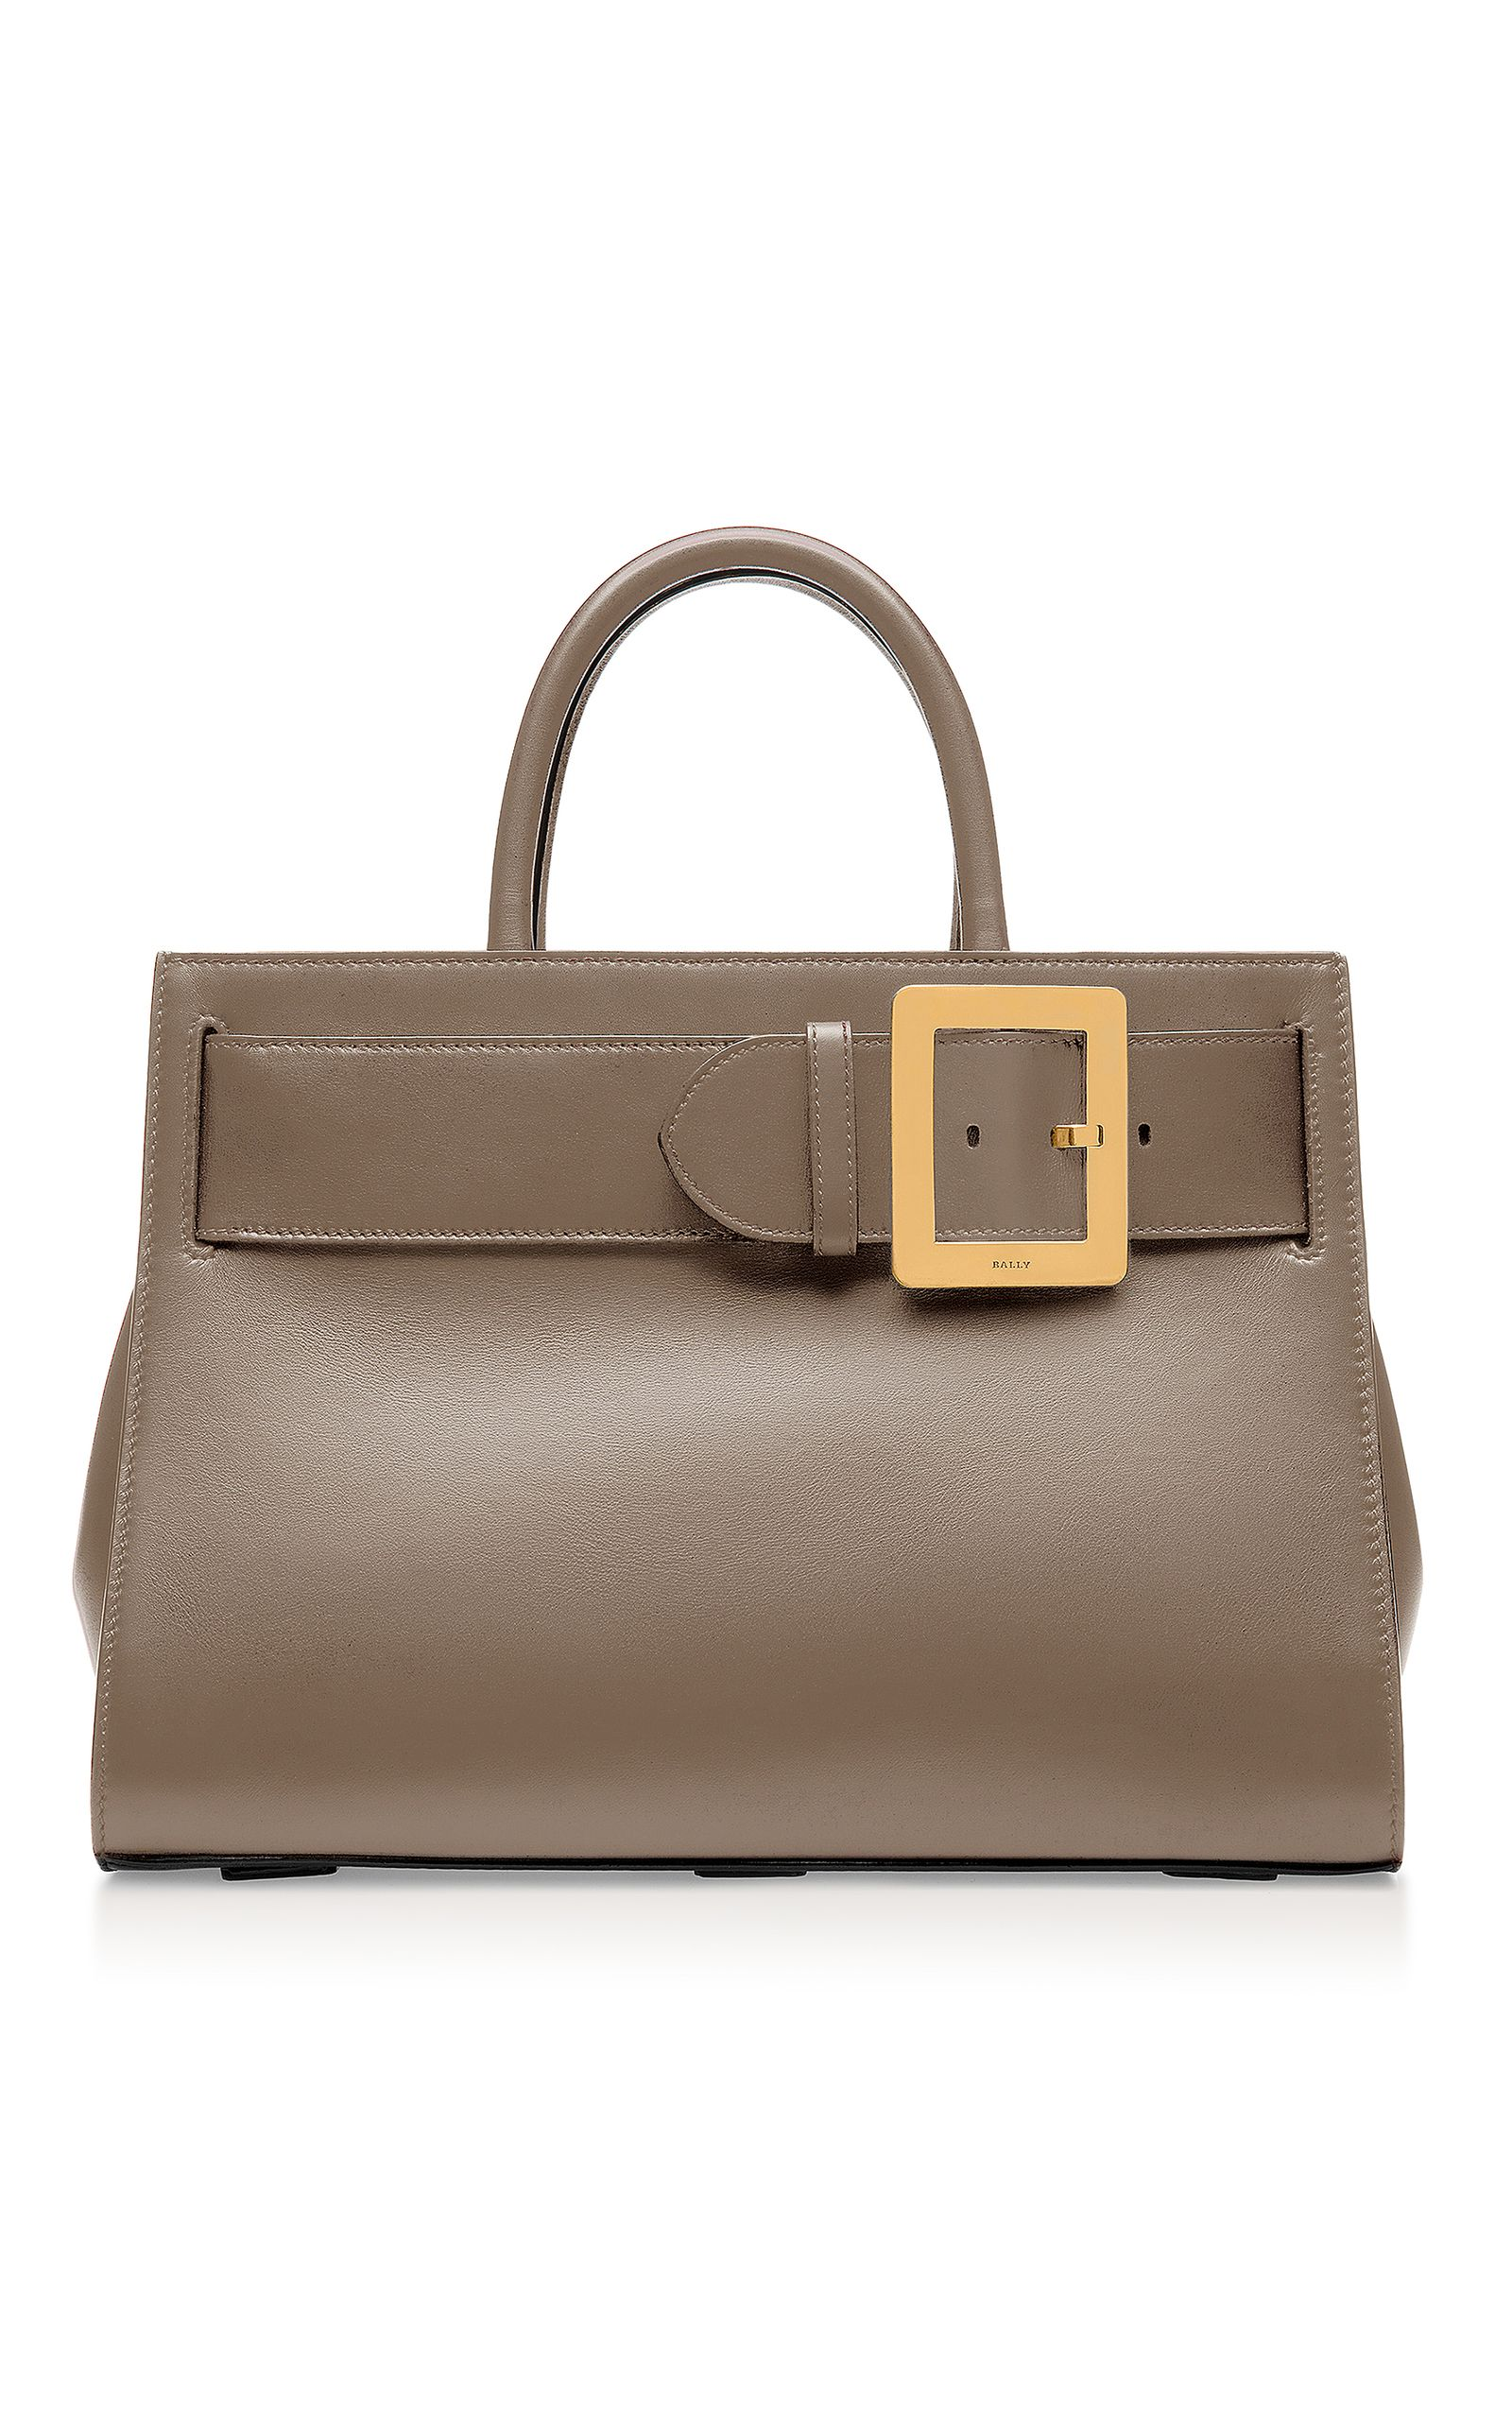 BALLY M O Exclusive  Belle Large Tote.  bally  bags  leather  hand bags   tote   38756f8550d53